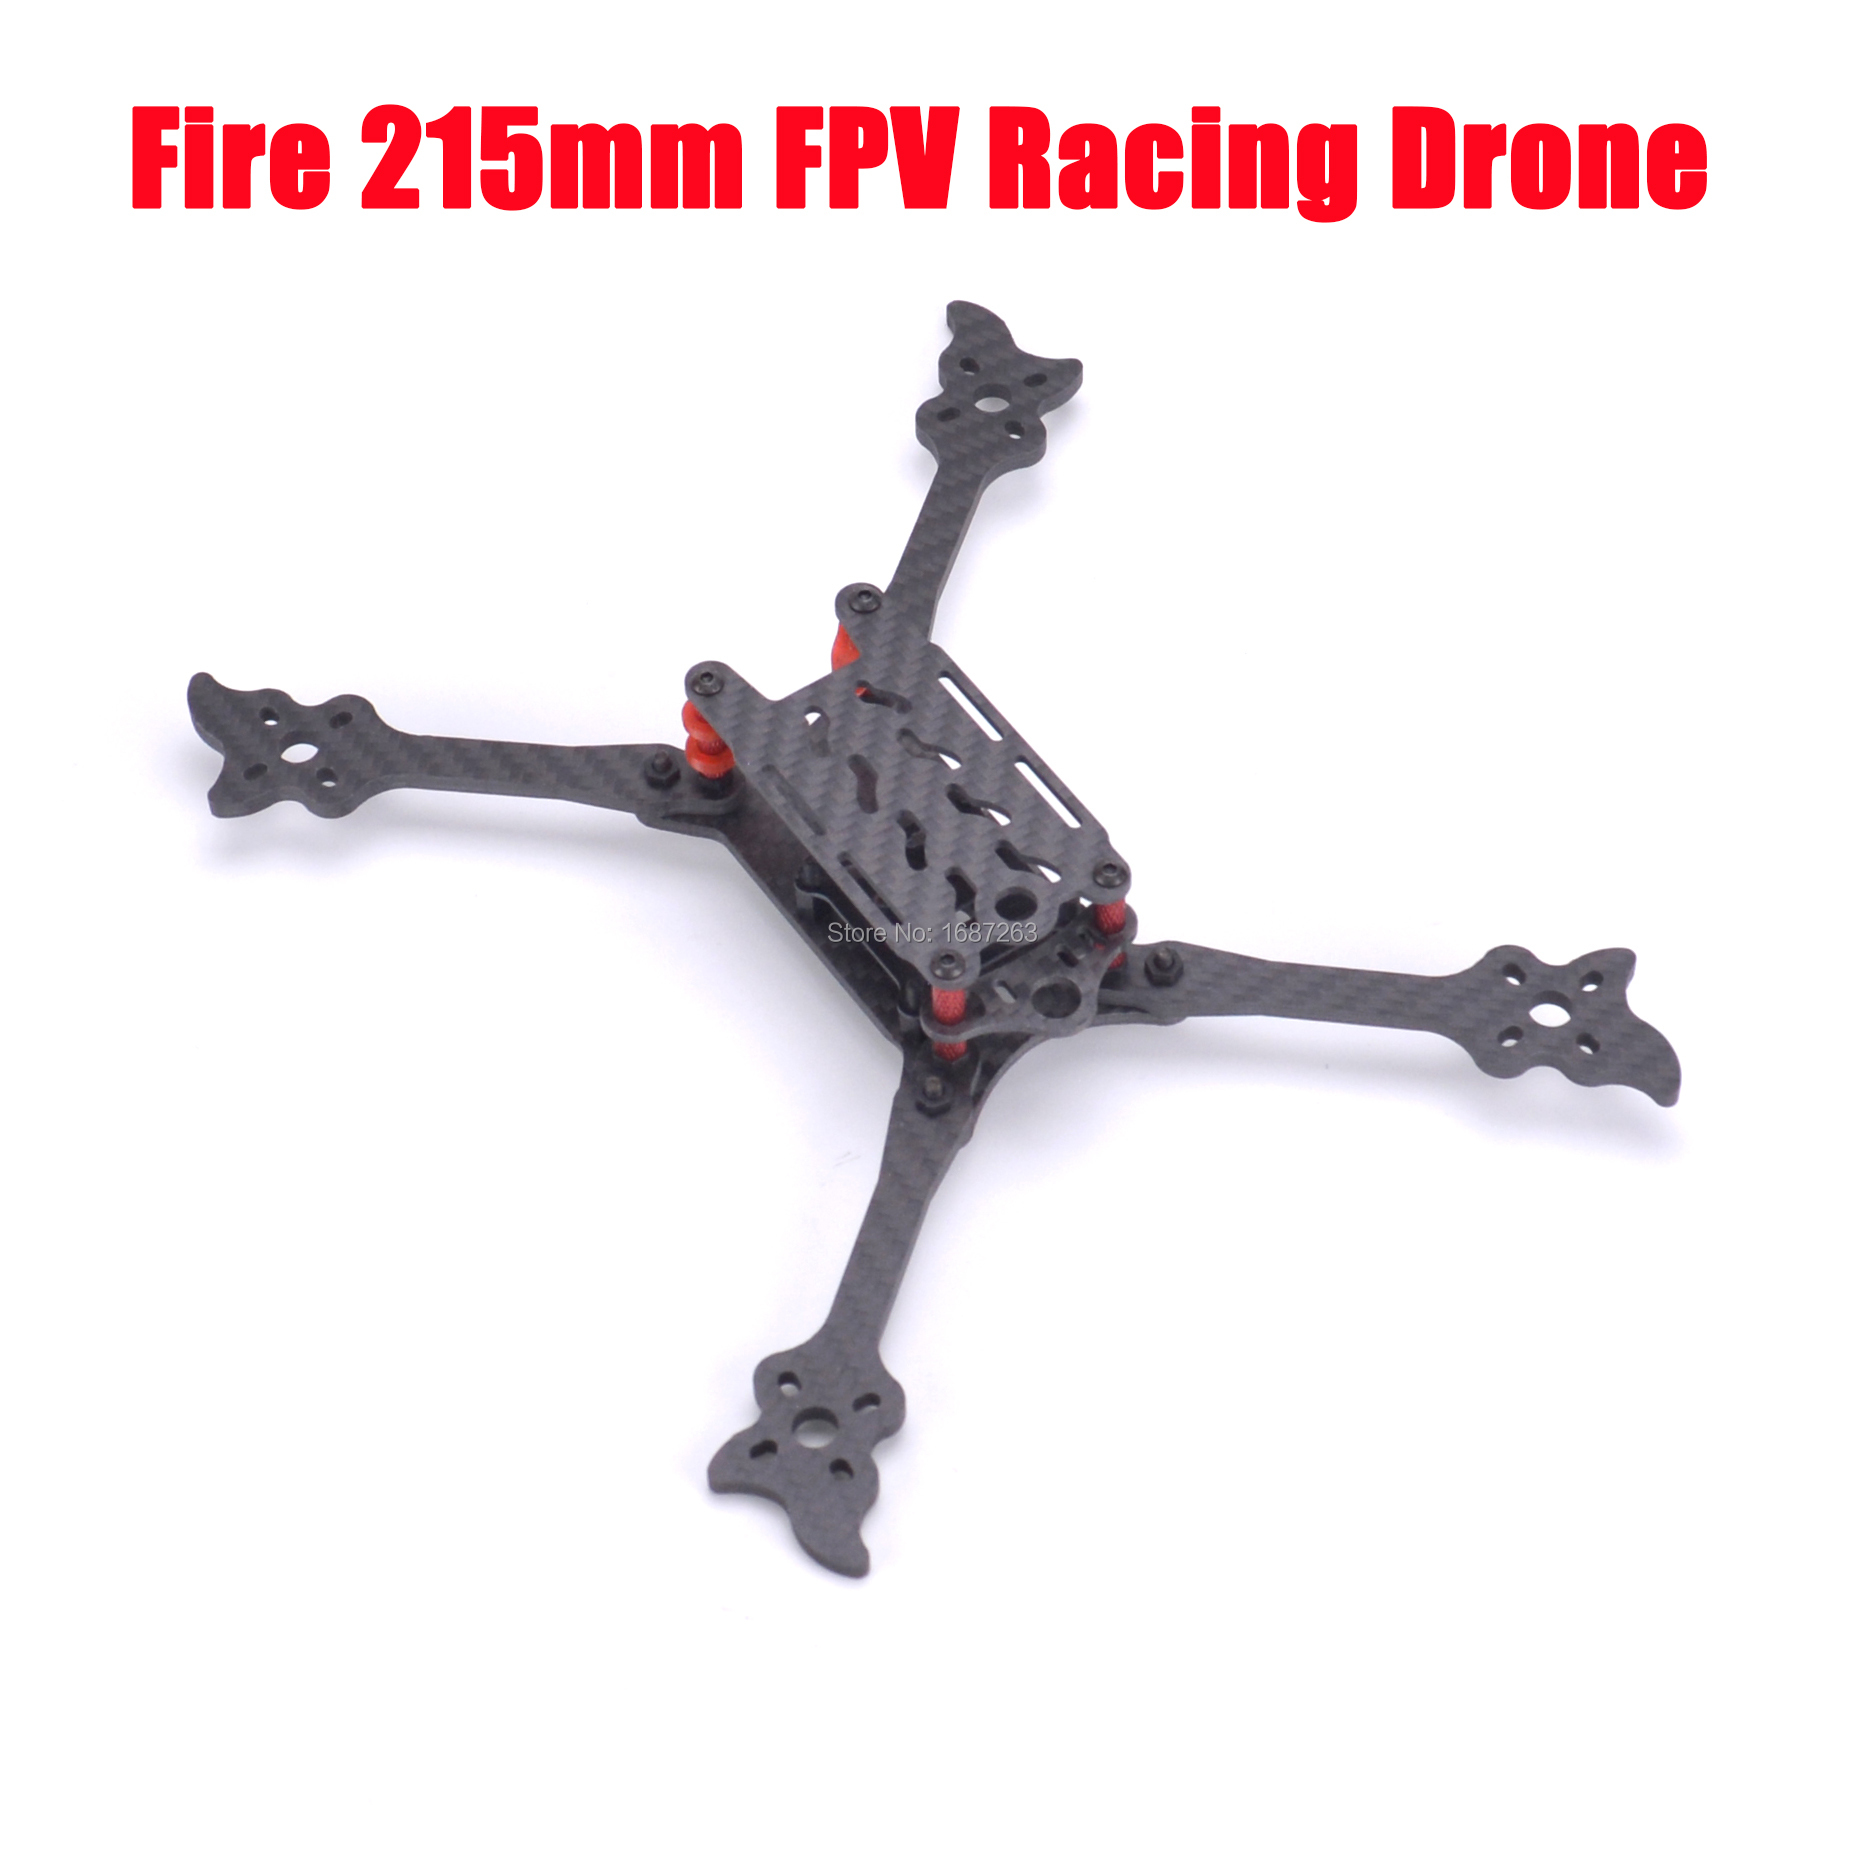 Fire 215mm FPV Racing Drone (1)